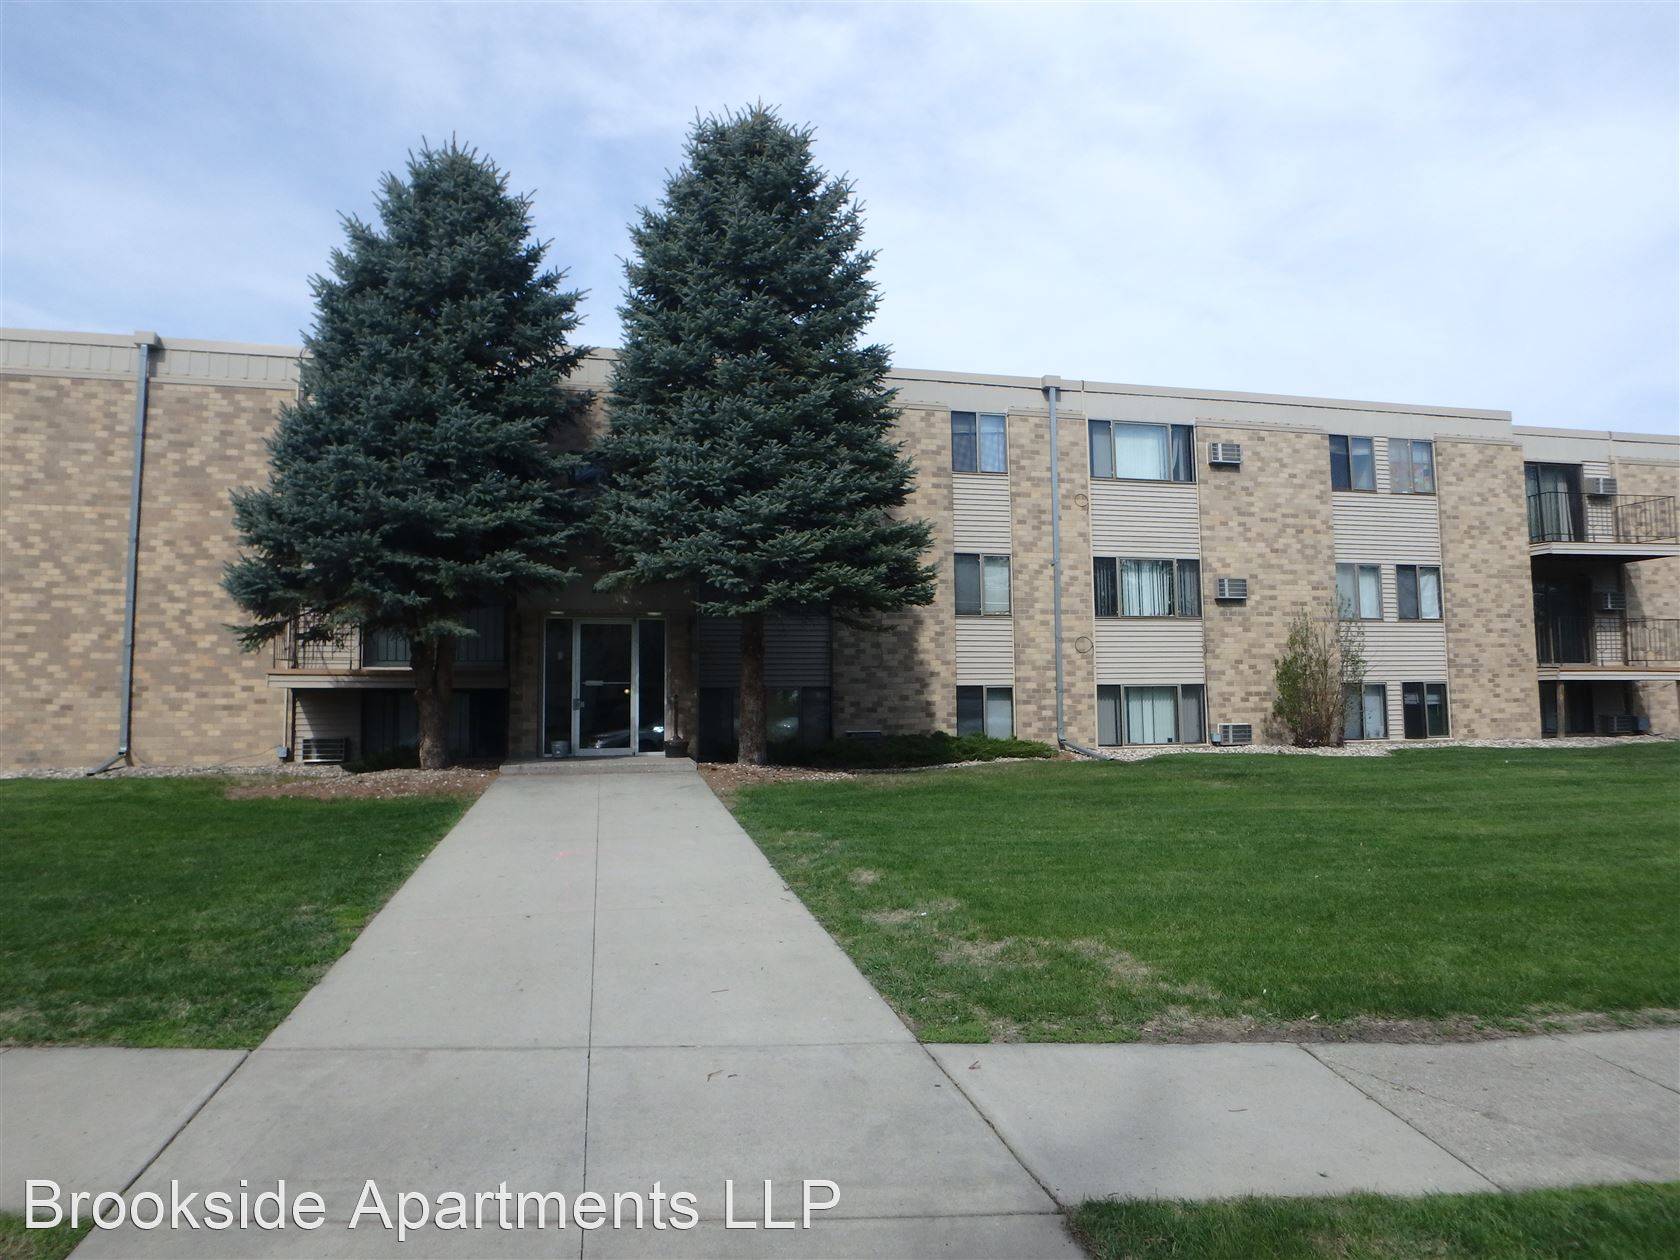 2621 14th Street South - 525USD / month